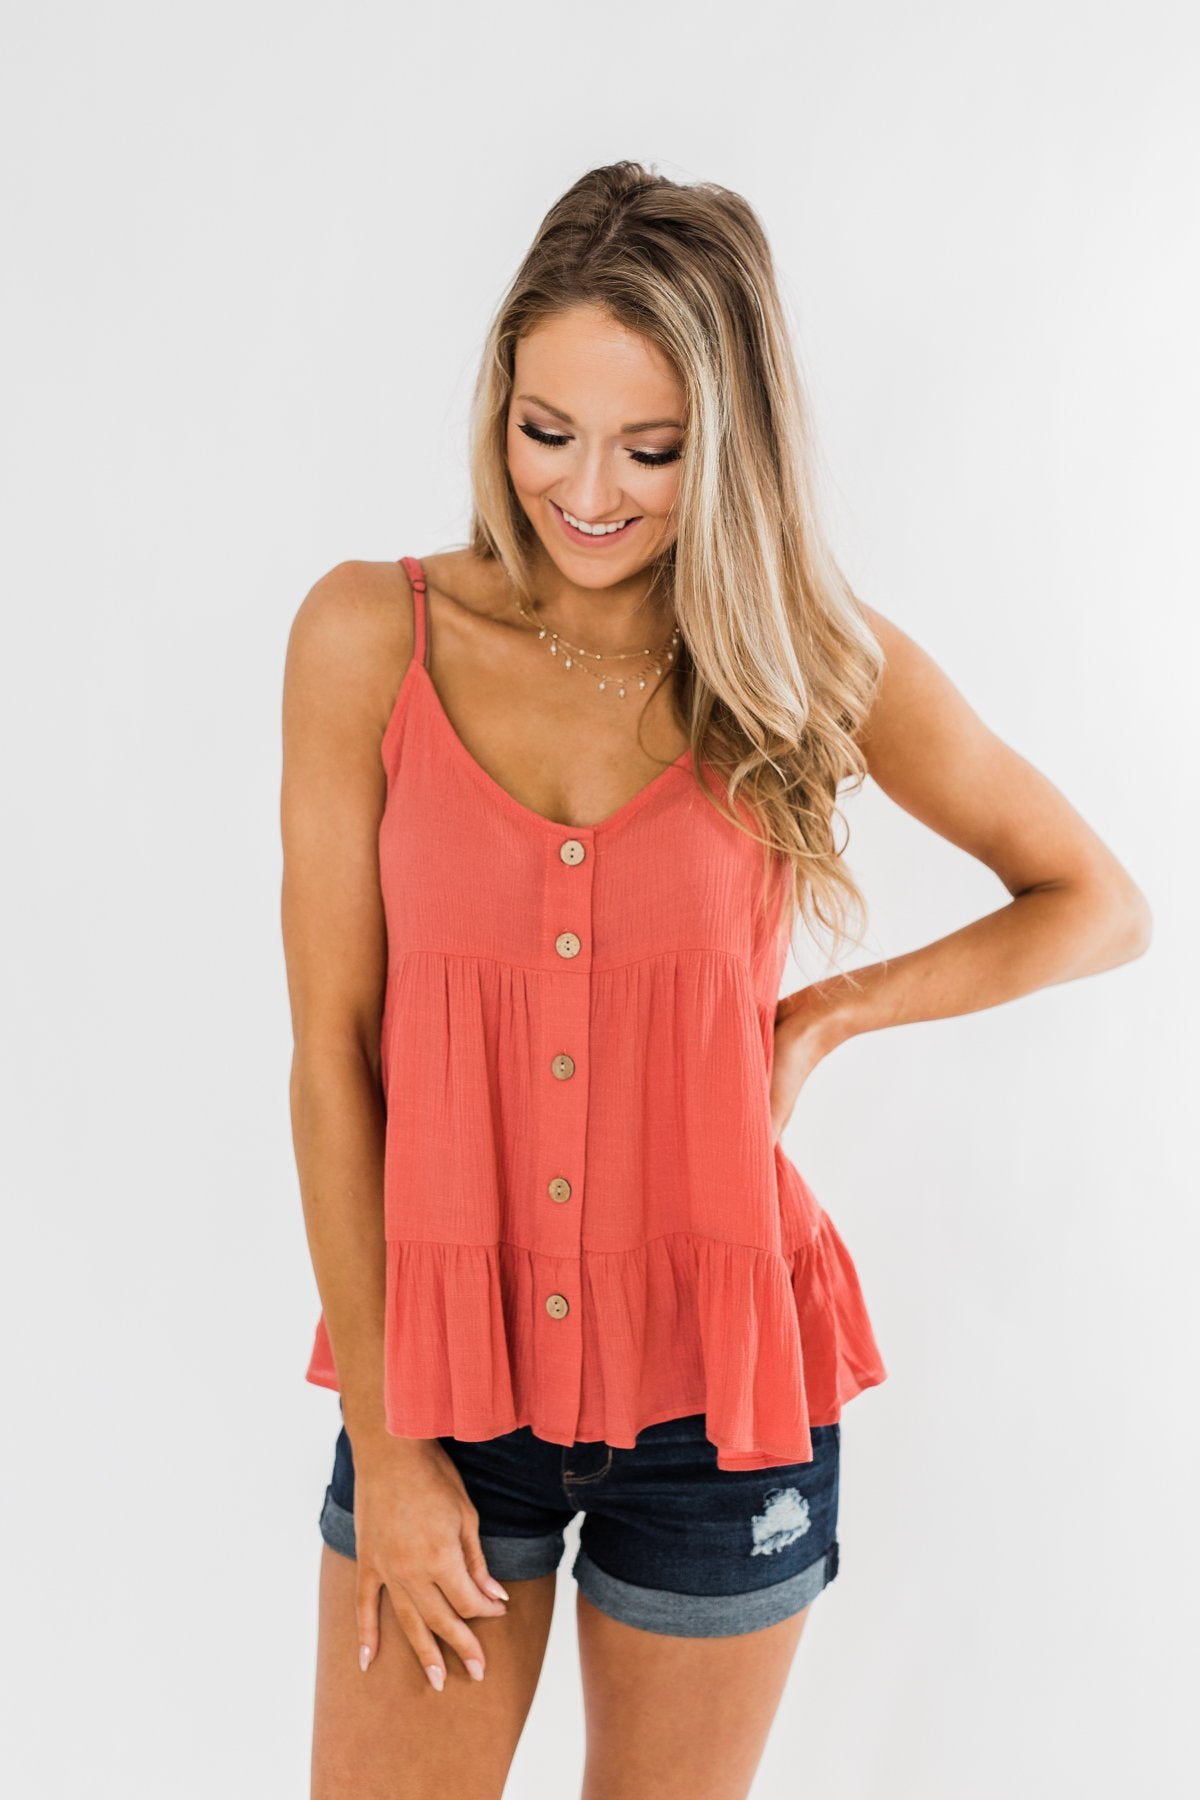 How Wonderful It Is Ruffled Button Tank Top- Deep Coral